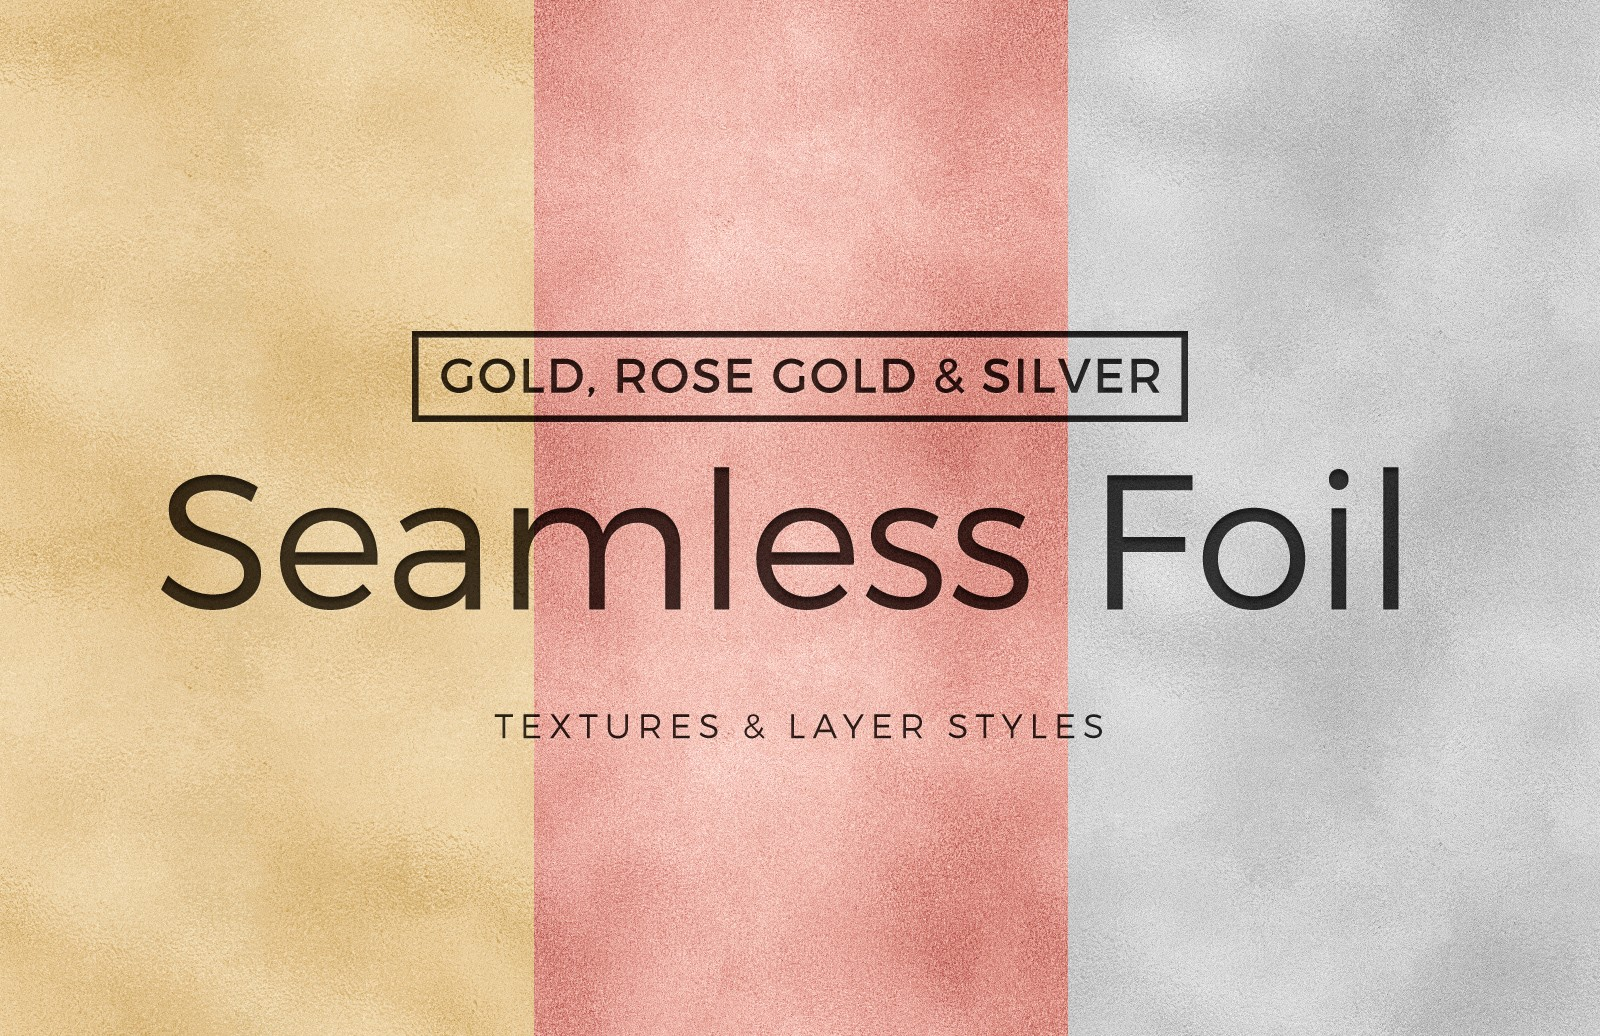 Seamless  Foil  Textures   Layer  Styles  Preview 1A